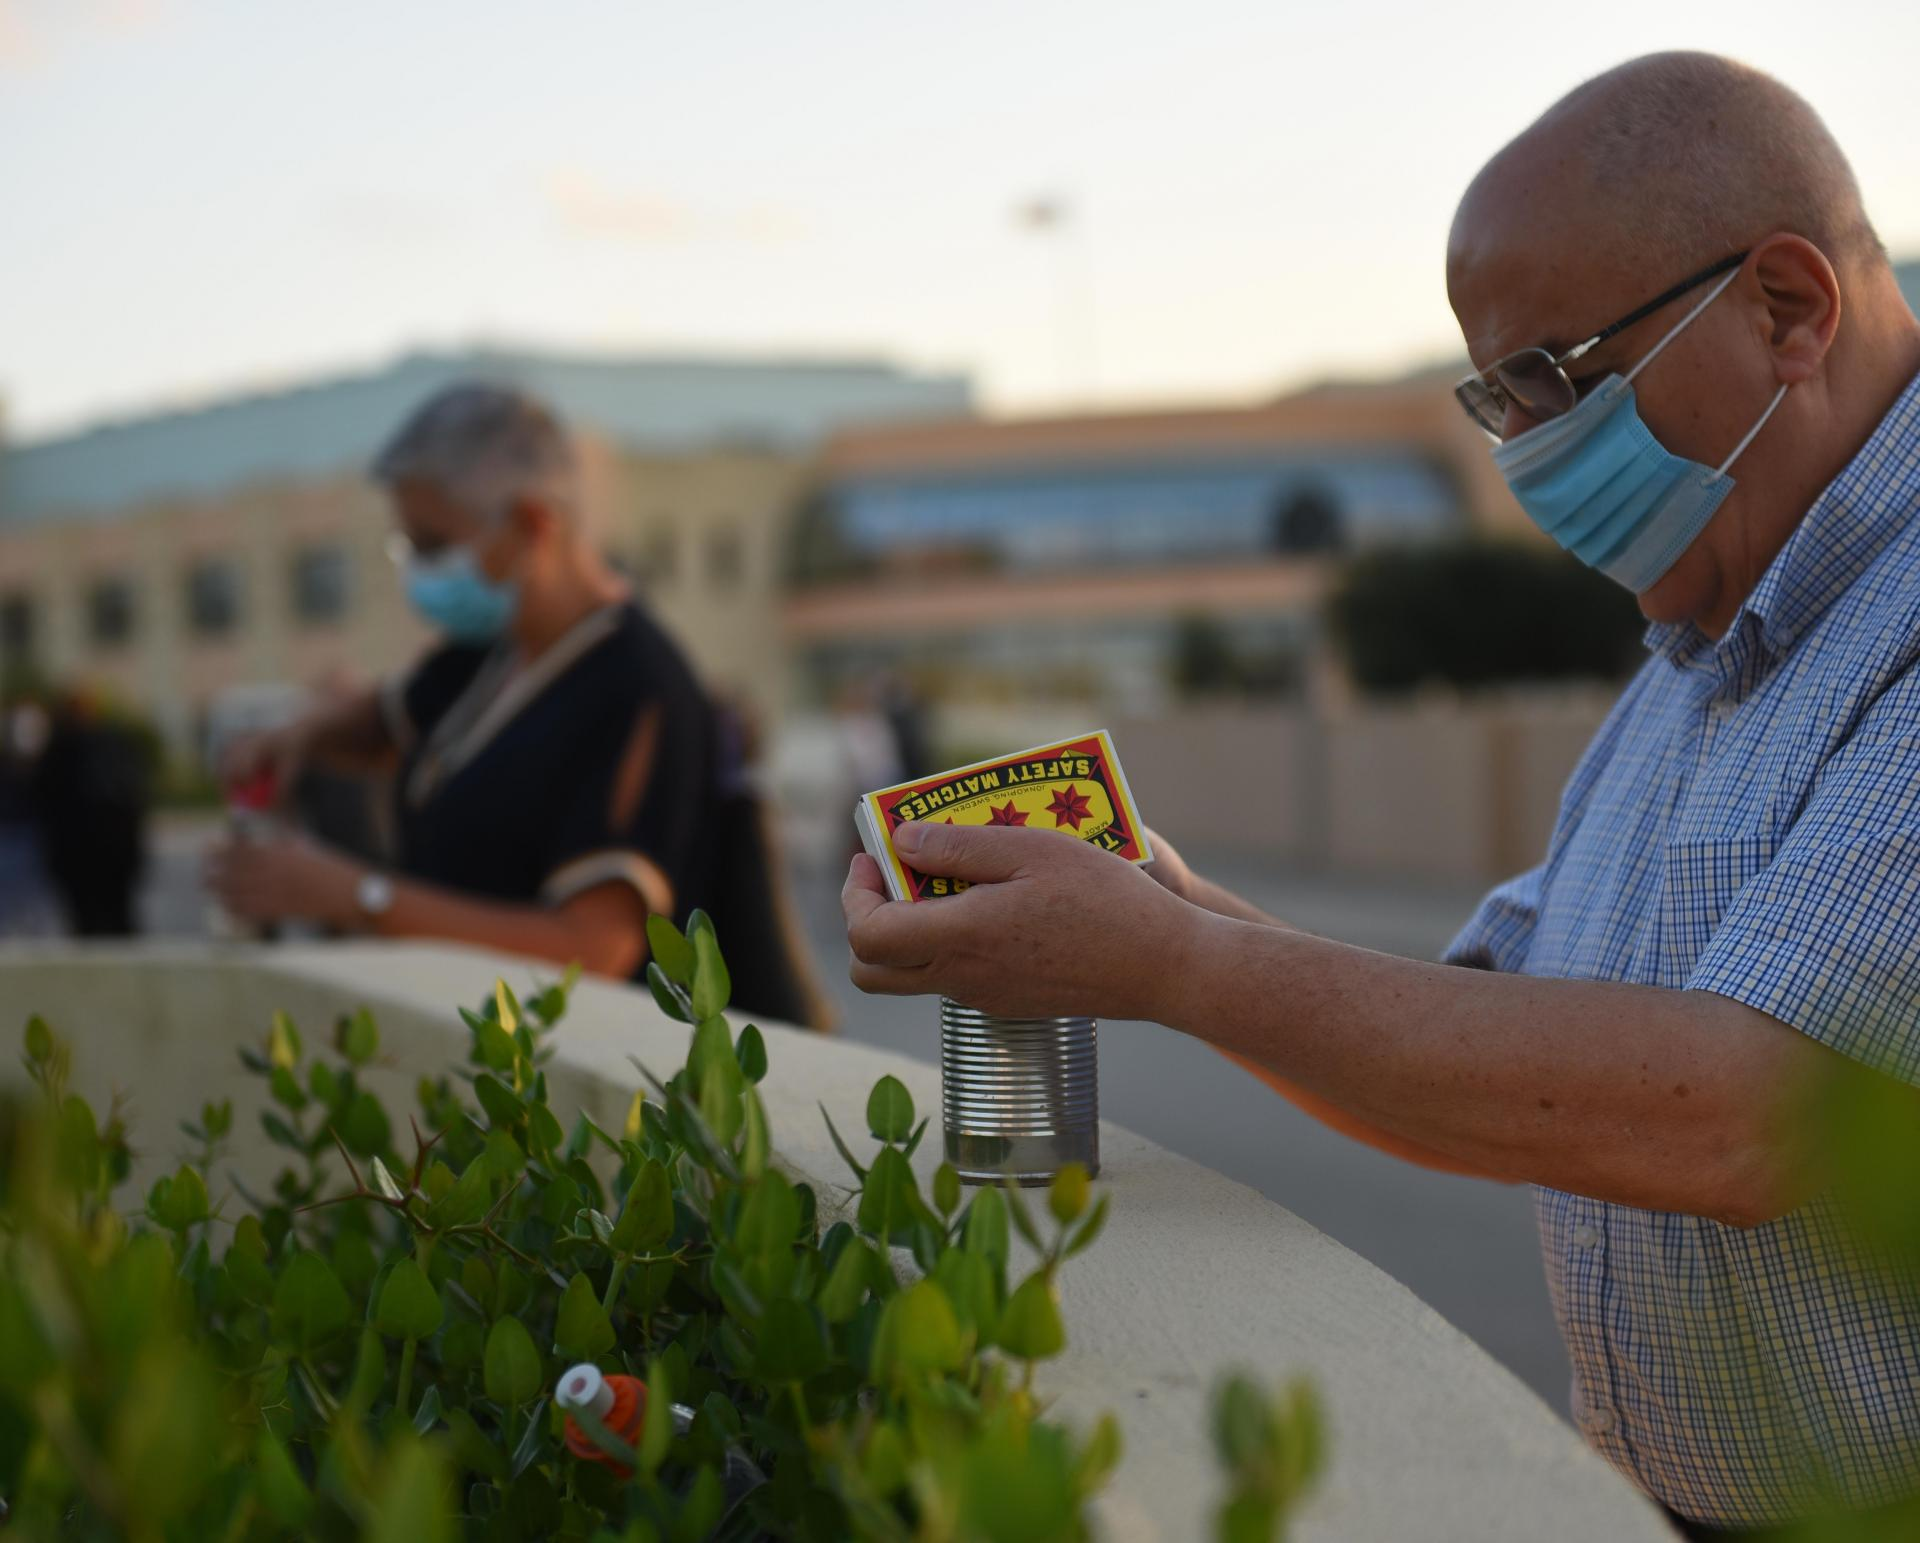 Relatives of COVID-19 victims light candles outside Mater Dei Hospital to honour their loved ones. Photo: Chris Sant Fournier